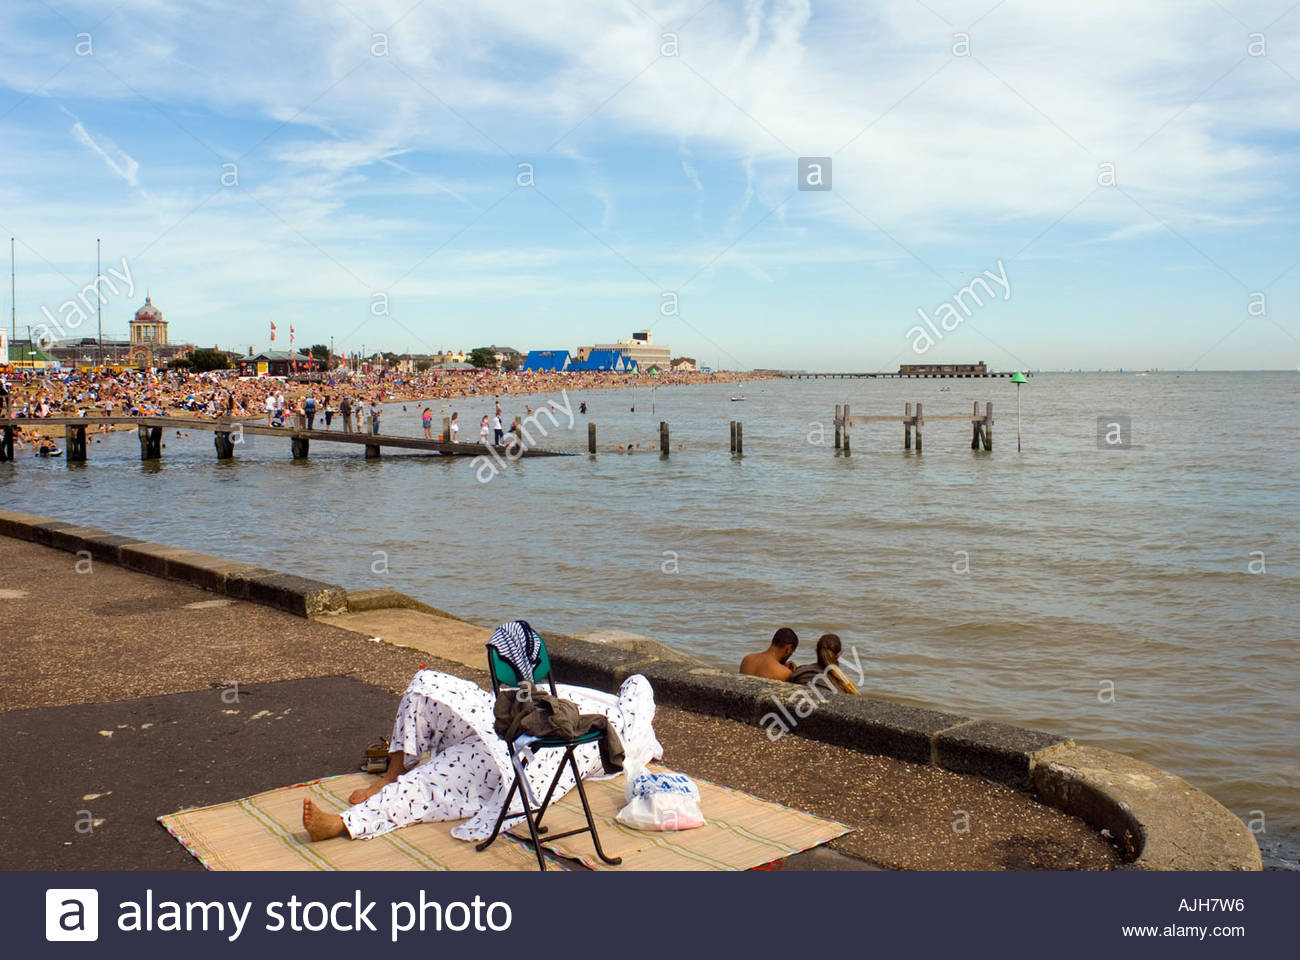 Asian woman sleeping on the promenade at Southend on Sea Essex South East England UK - Stock Image